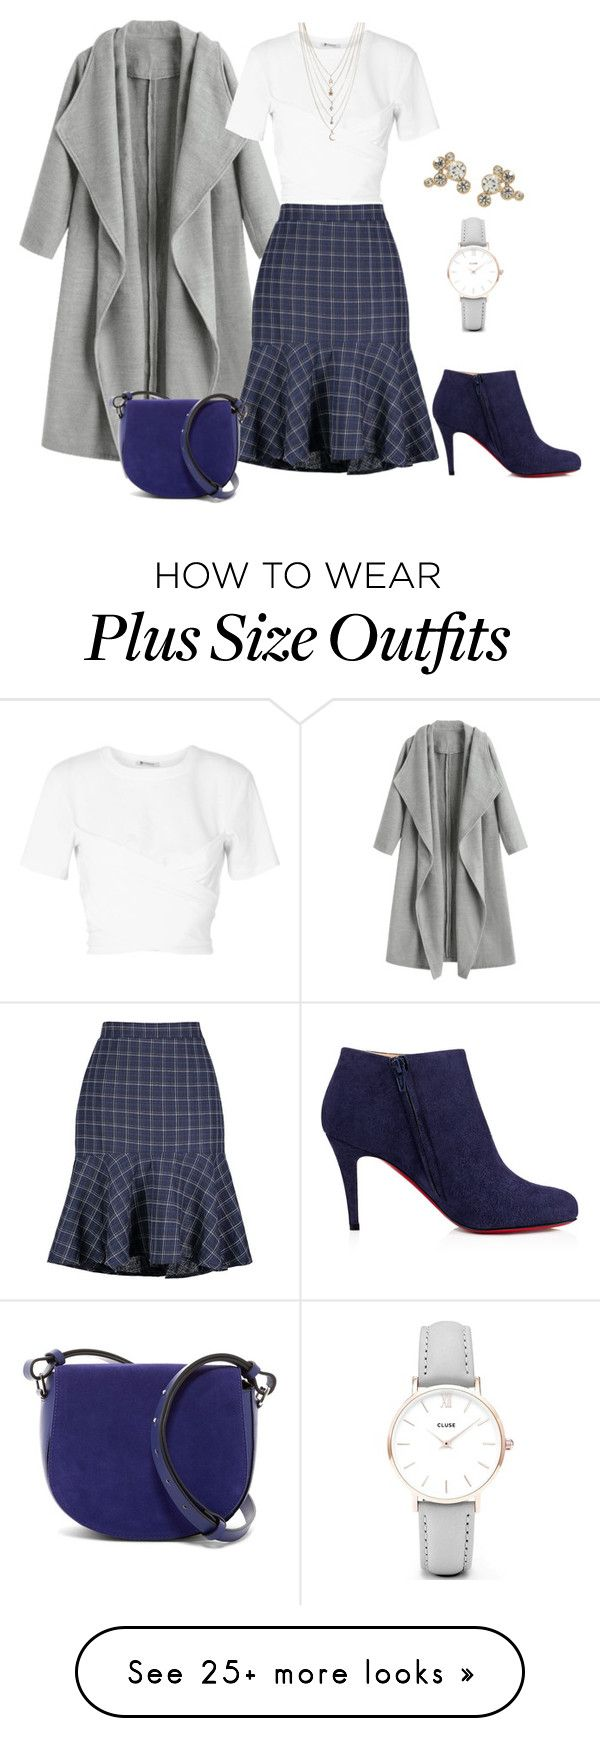 """""""Untitled #2473"""" by barbaratweten on Polyvore featuring T By Alexander Wang, Christian Louboutin, French Connection, Ettika, CLUSE, WorkWear, plussizeskirt and BlueAndGrey"""